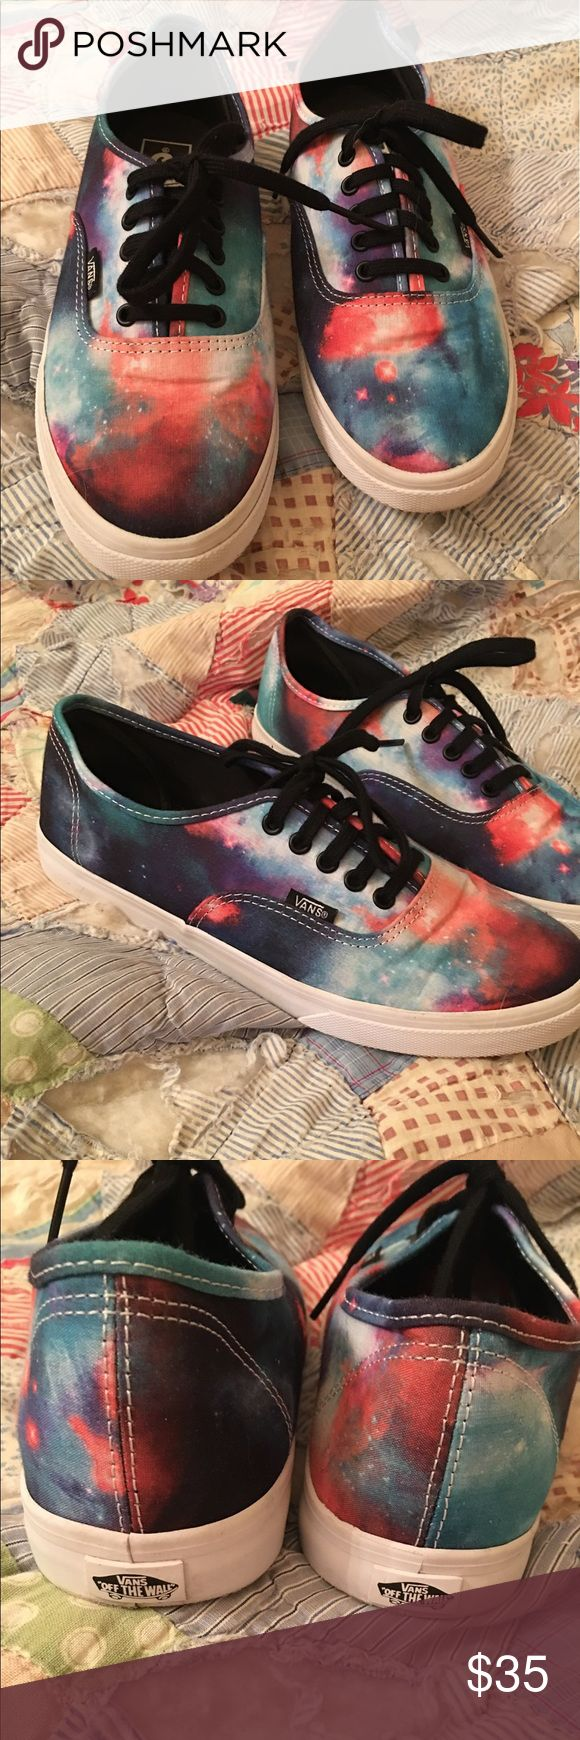 Authentic VANS Lo Pro Galaxy Nebula True White These are amazing!! They are gently worn as shown in picture but no major stains or imperfections. These can be for men or women. The men's size is 6.5 and women's is 8.0. If you have any questions please ask. ⭐️ Vans Shoes Sneakers